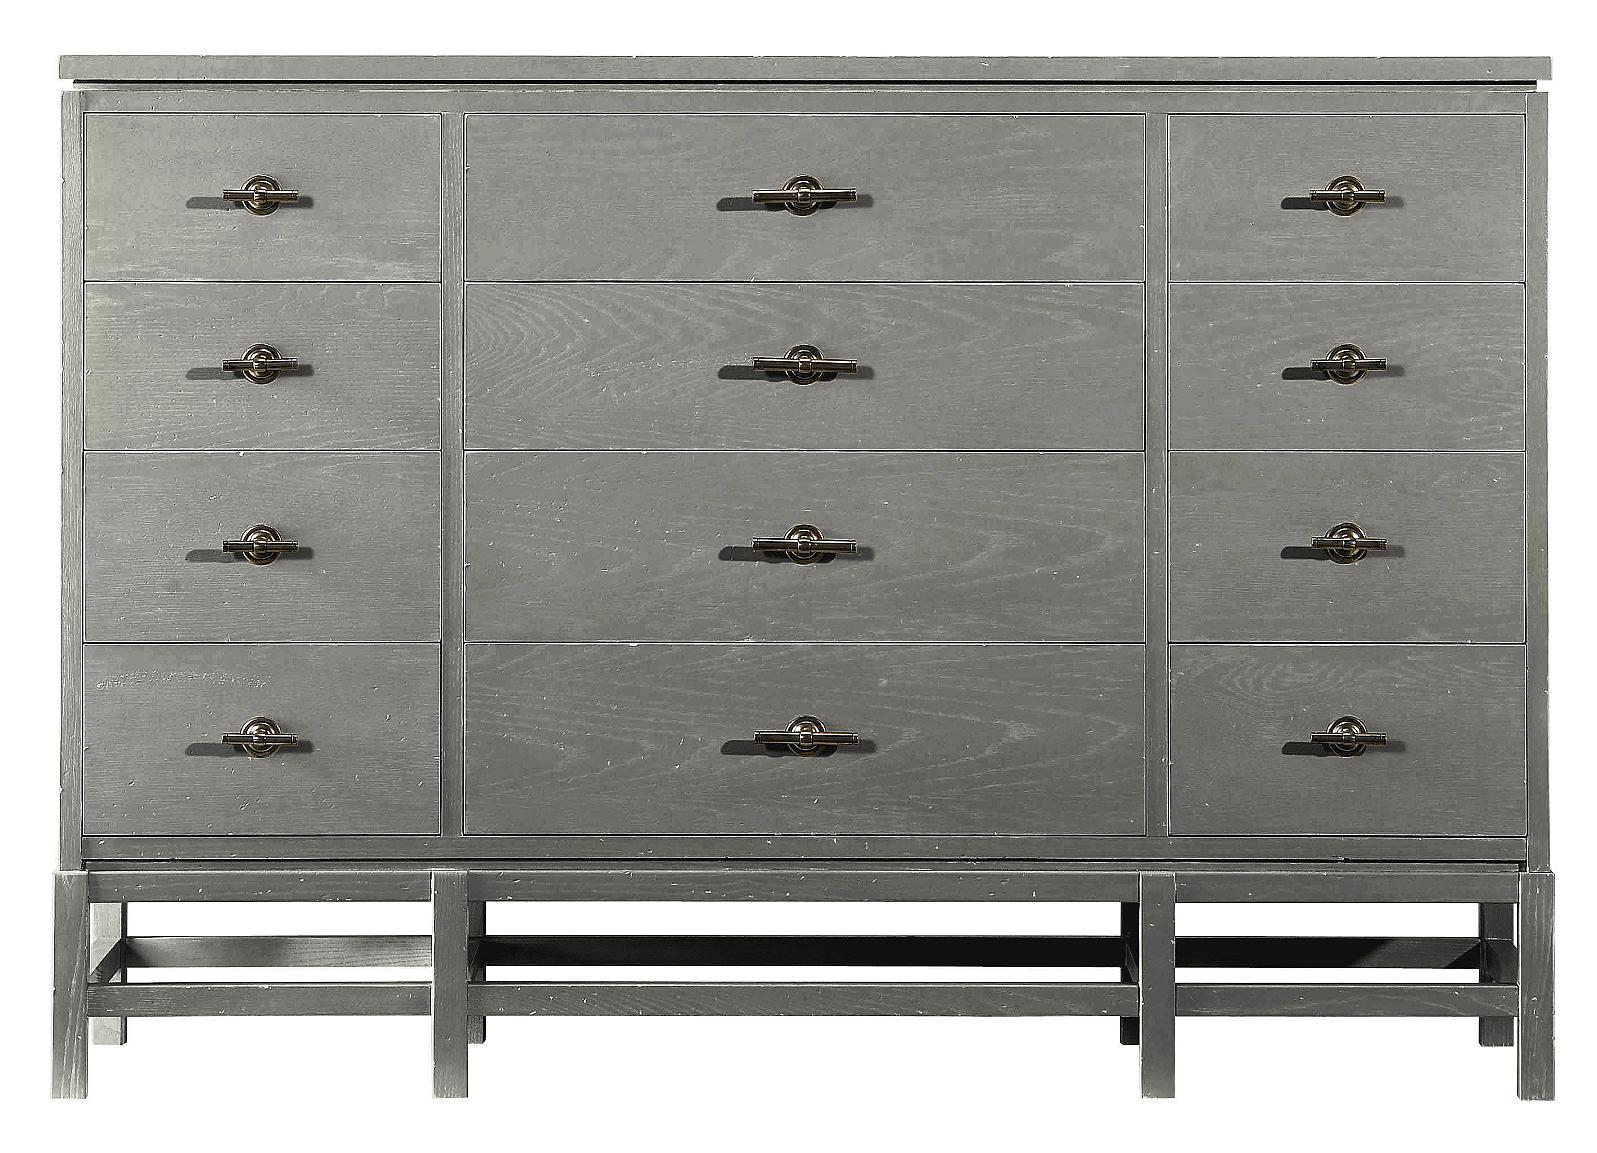 Stanley Furniture Coastal Living Resort Tranquility Isle Dresser - Item Number: 062-B3-06